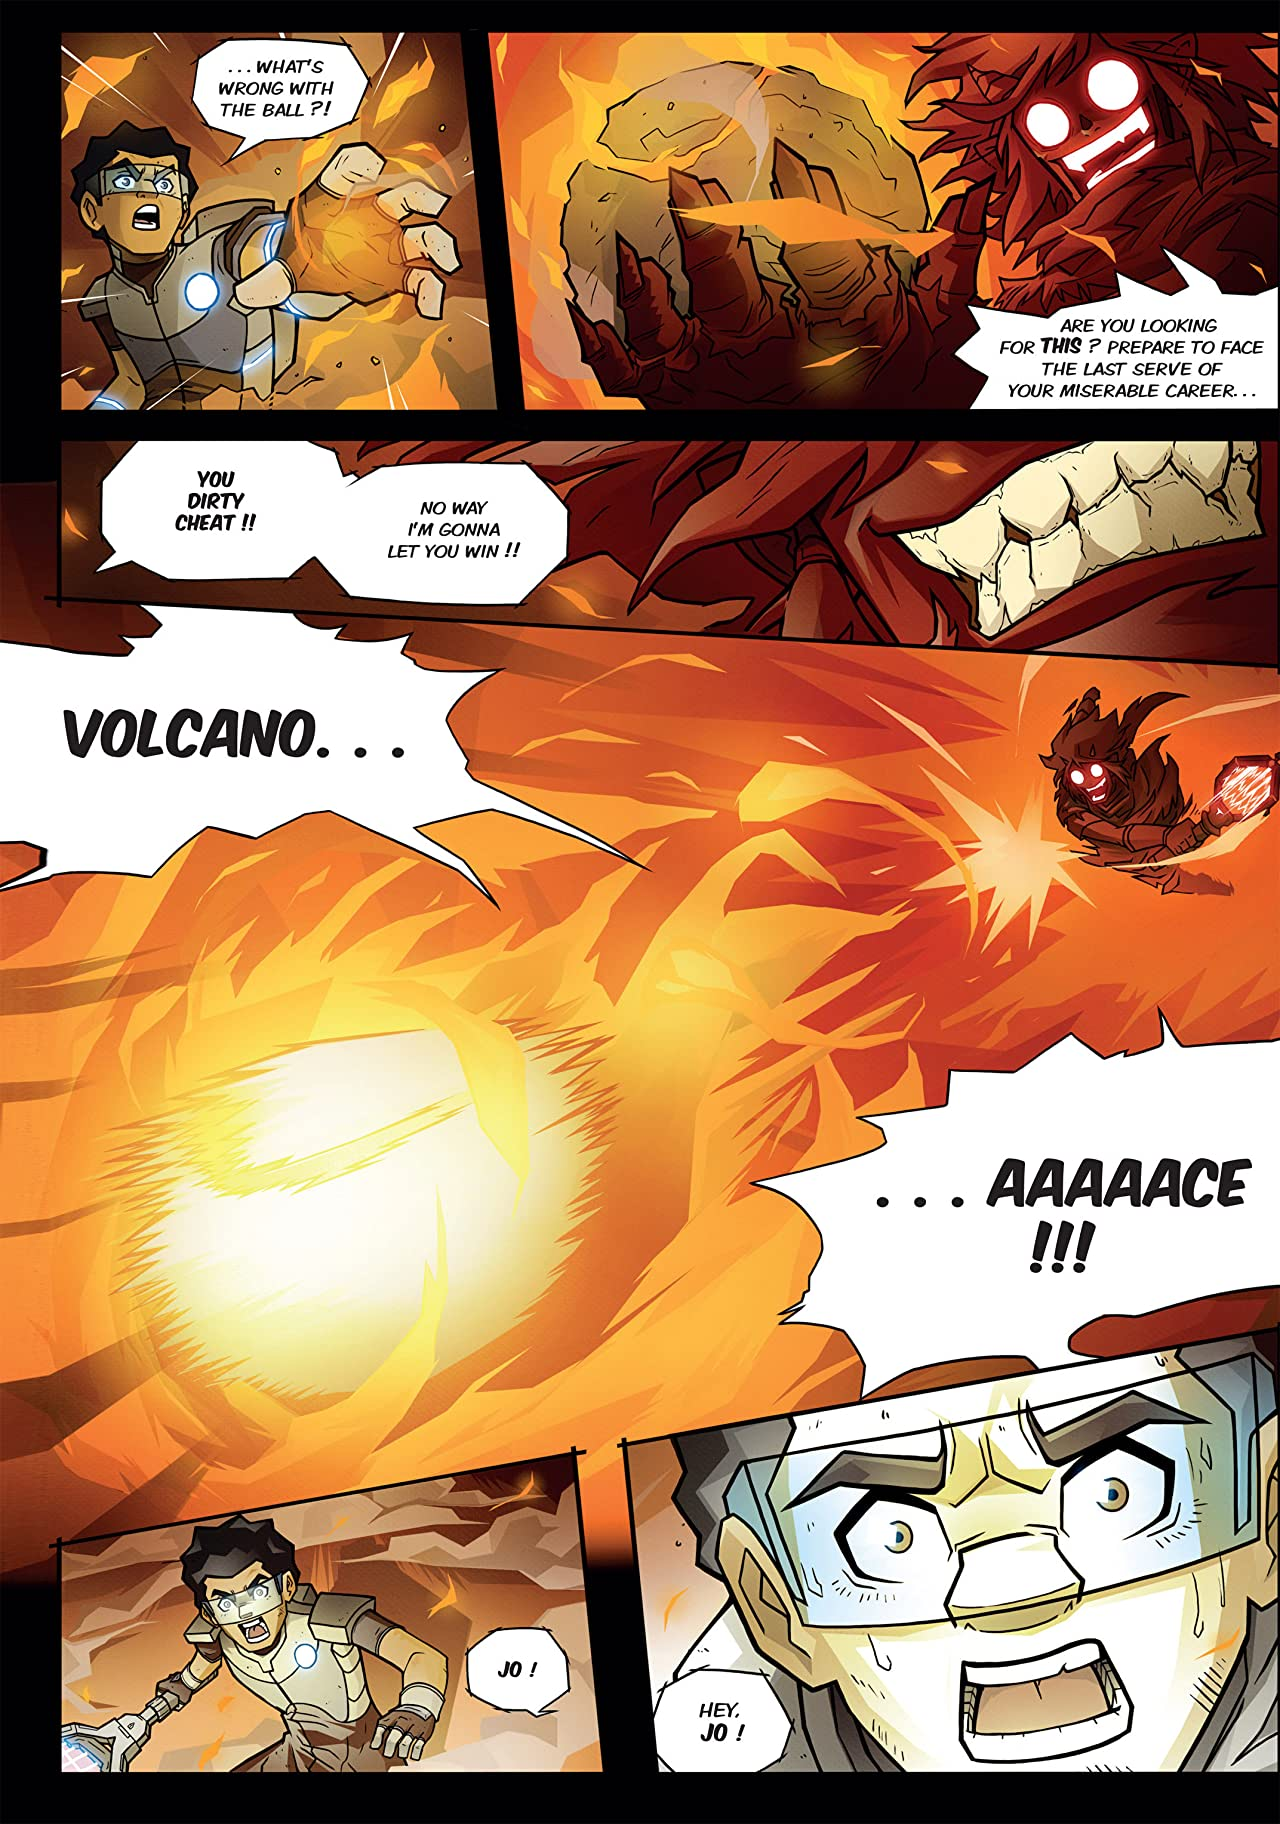 Turboten No.1: The Volcano Ace